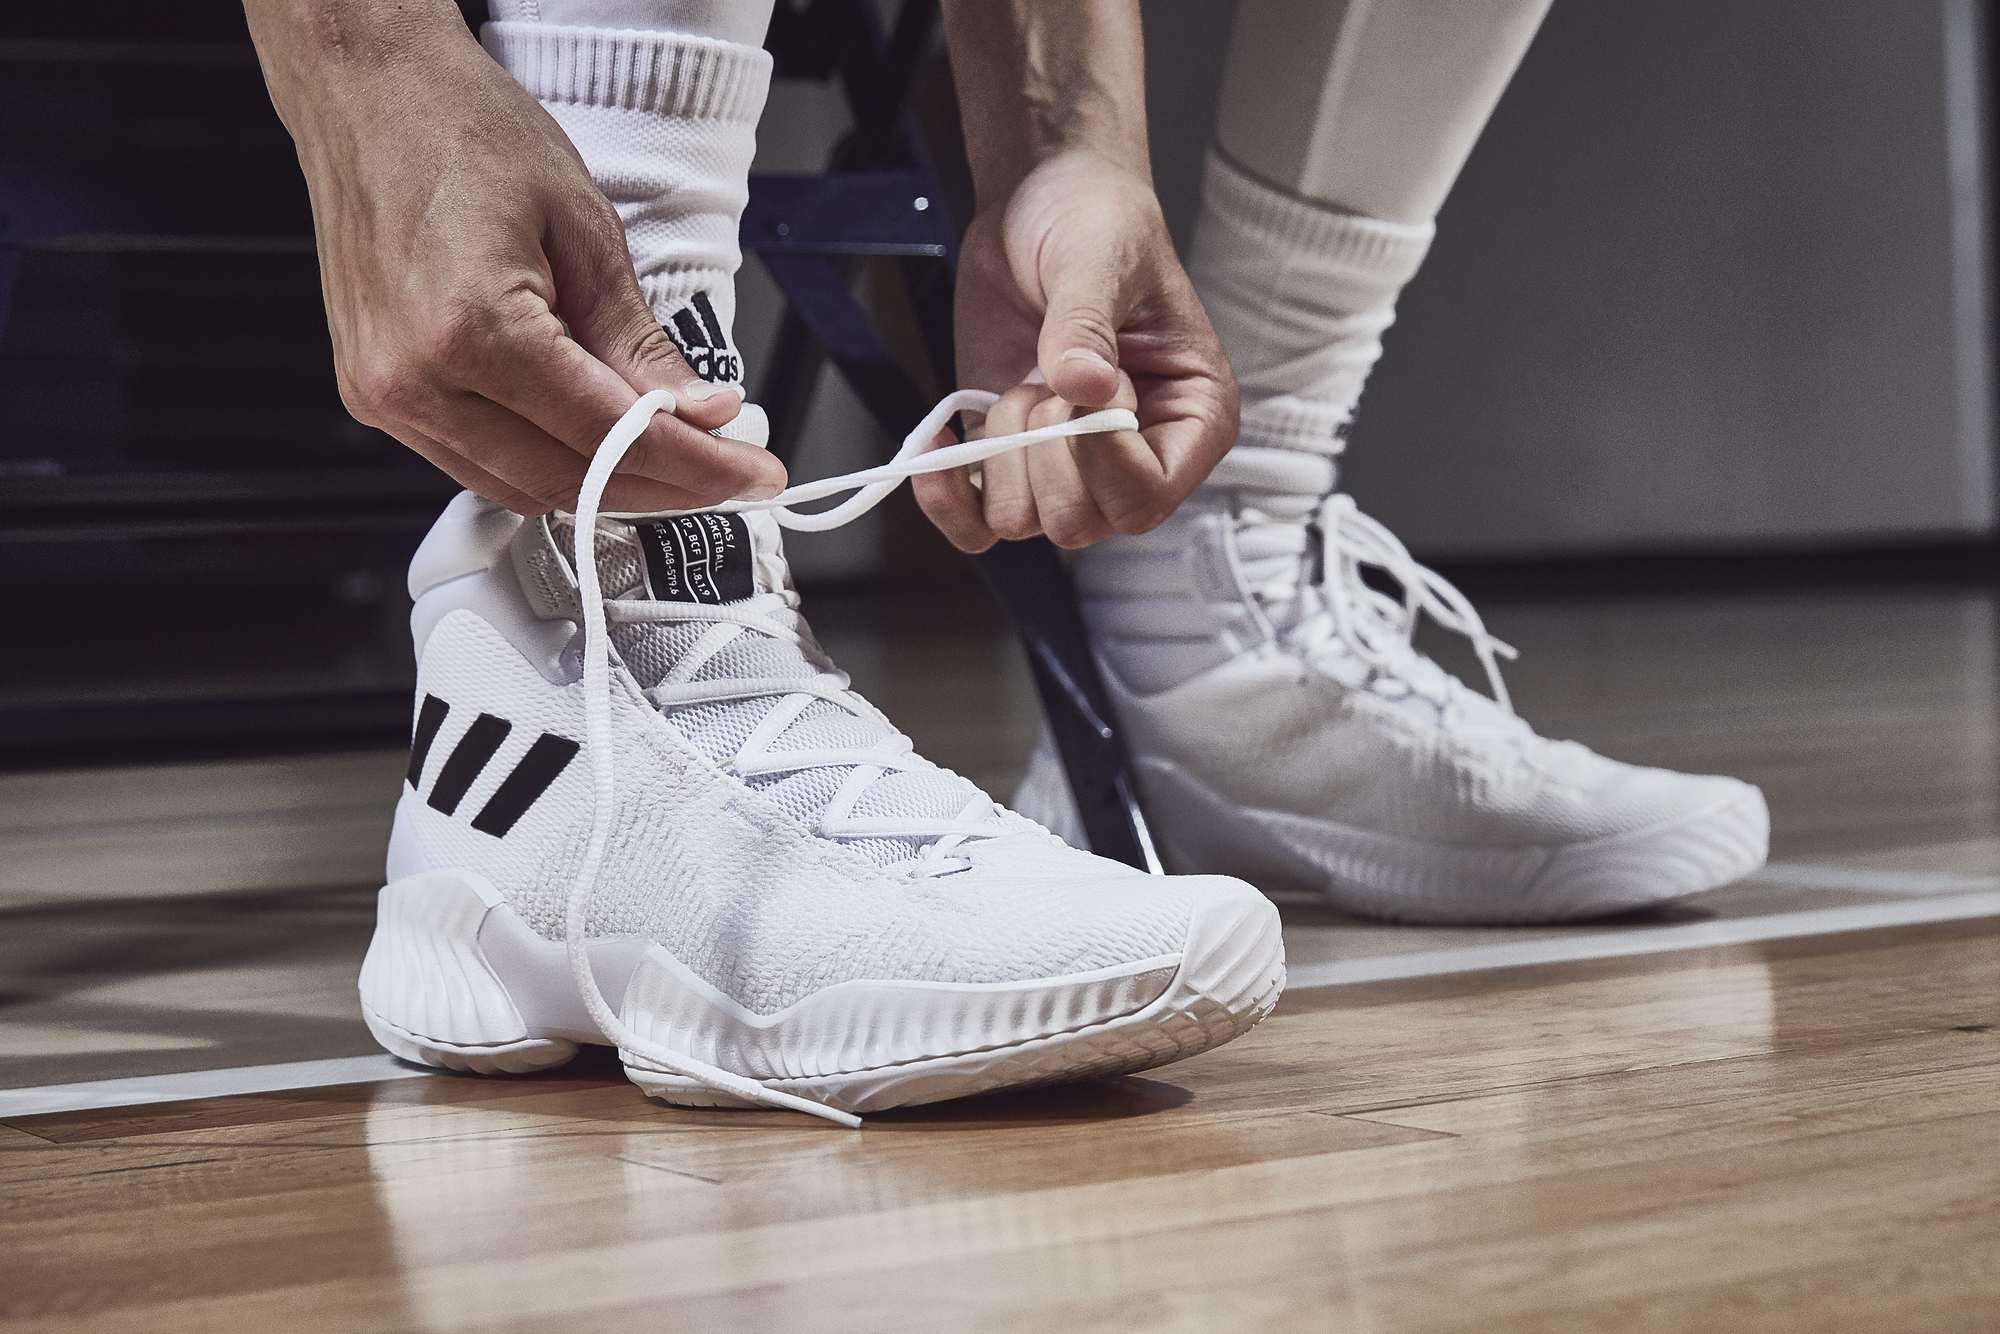 adidas Unveils New Basketball Sneakers, the Pro Bounce and